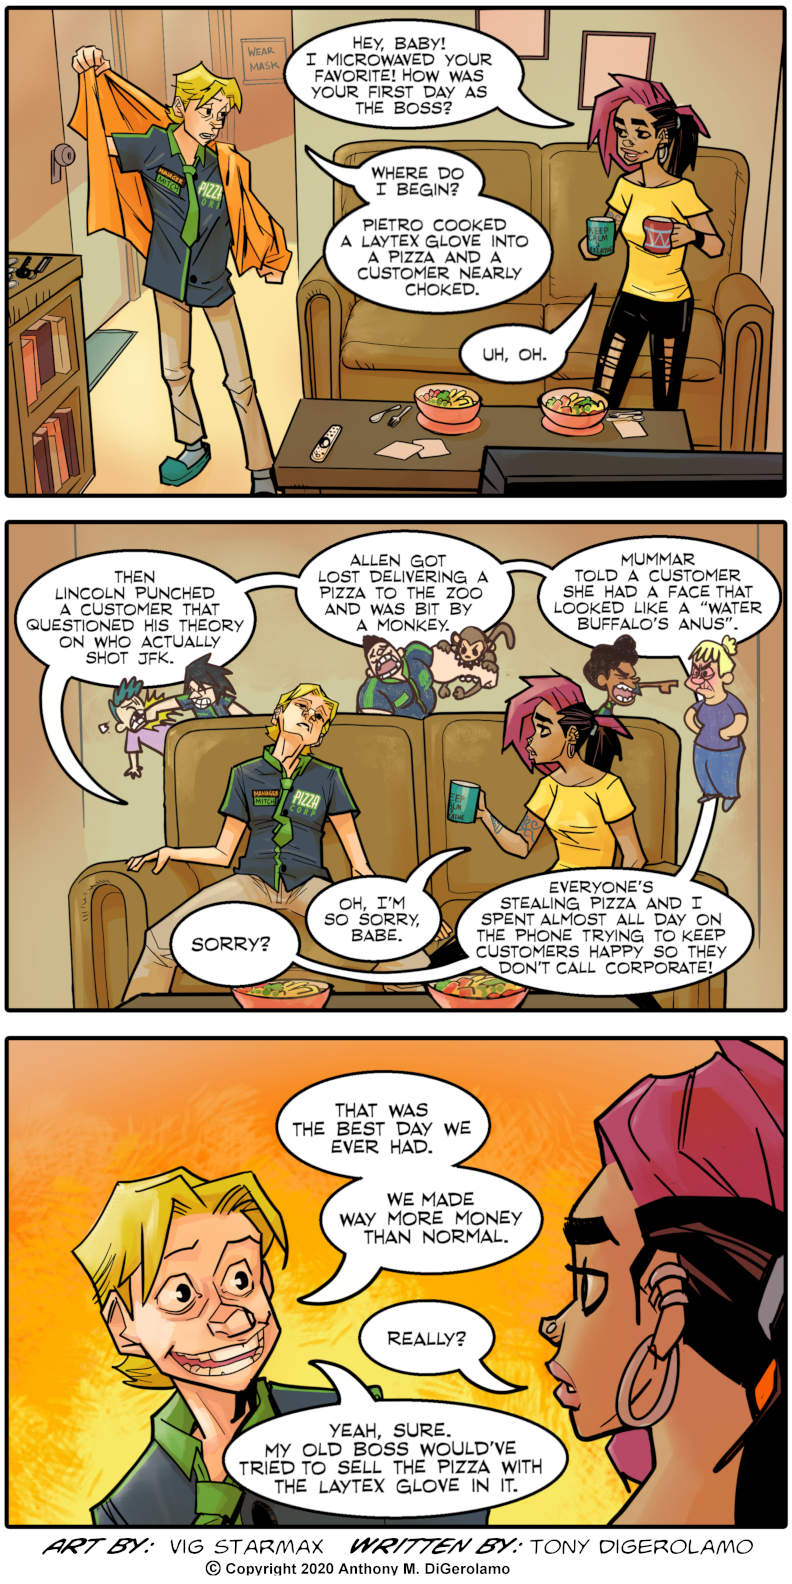 Tales of Pizza:  Being the Boss